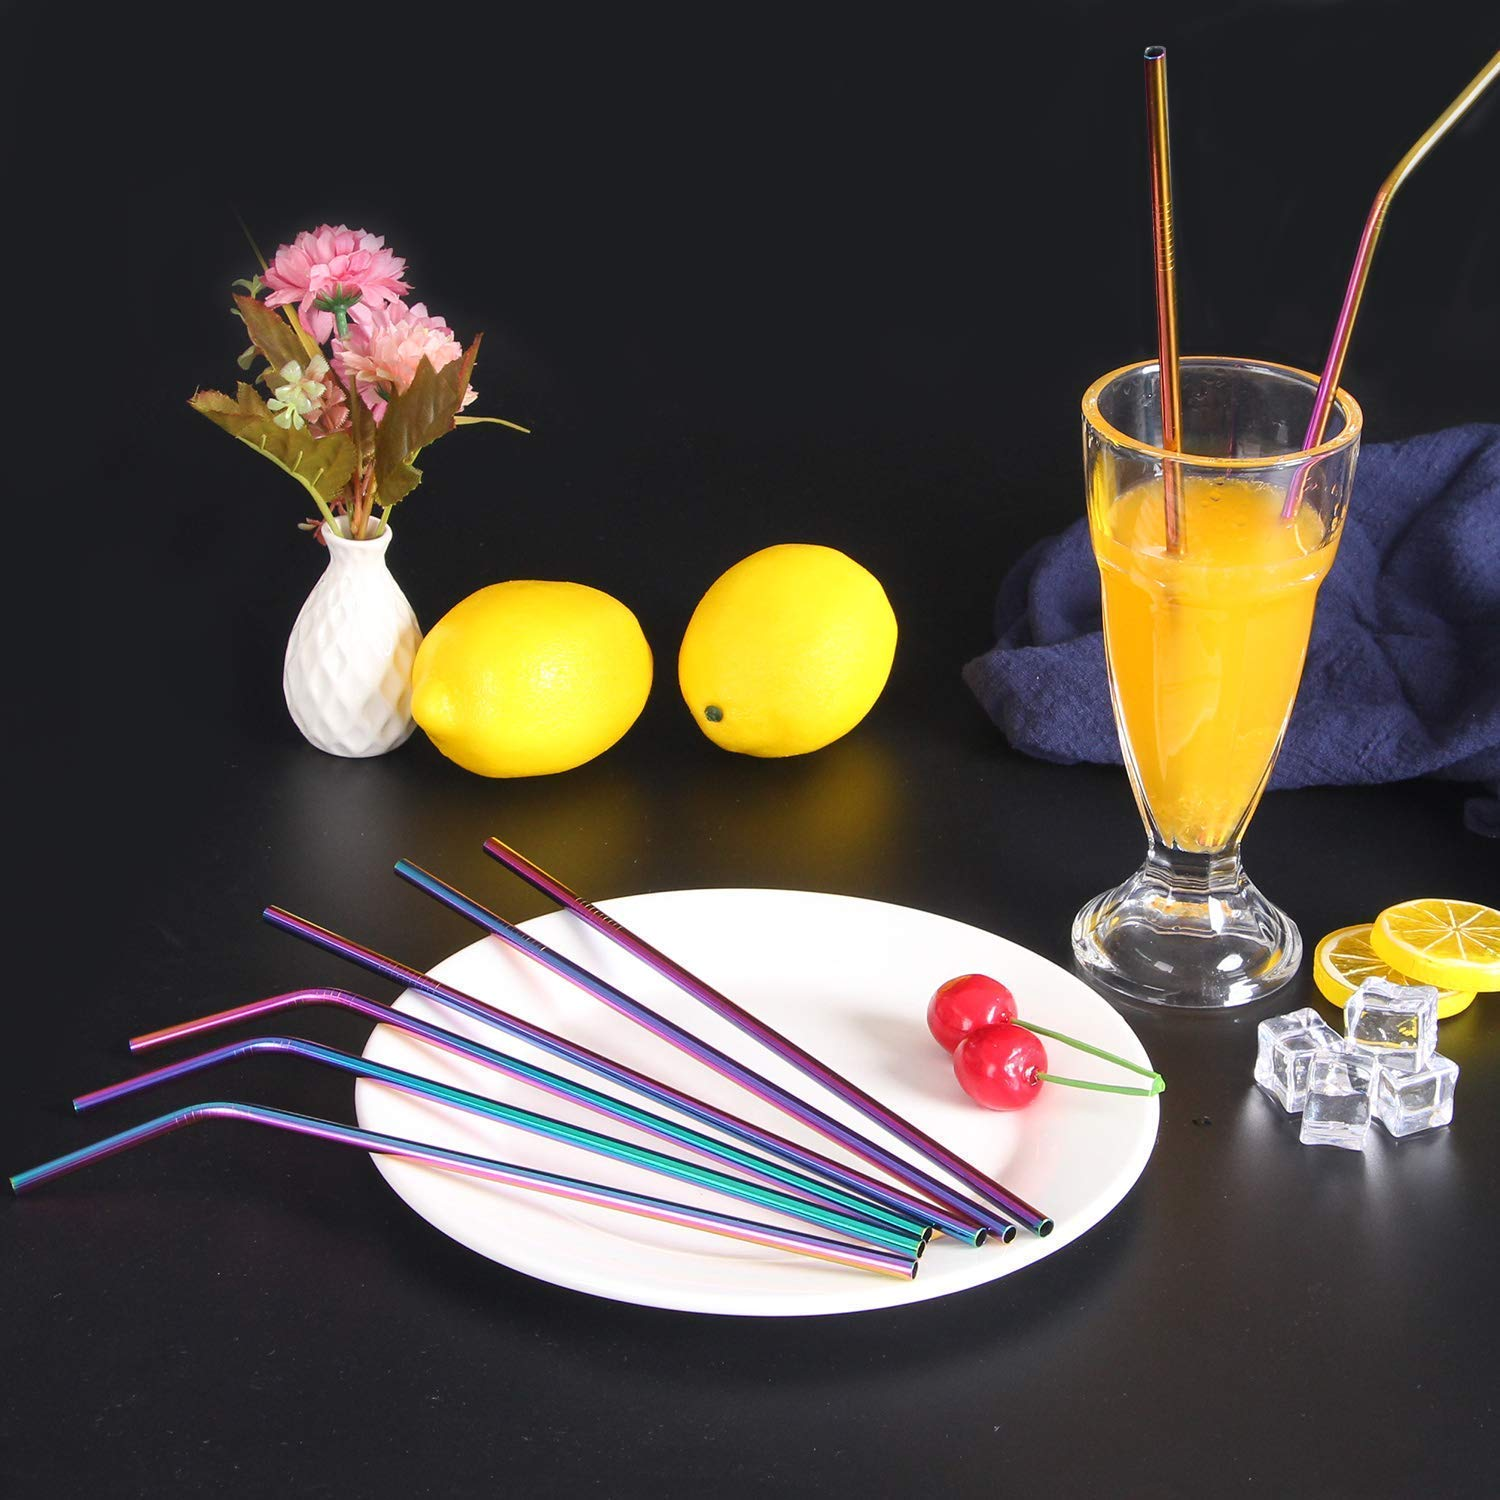 VEHHE Metal Straws Stainless Steel Straws 8 Set Reusable Drinking Rainbow Straws with Cleaning Brush for 20 OZ Tumblers(4 Straight + 4 Bent + 2 Brush) by VEHHE (Image #6)